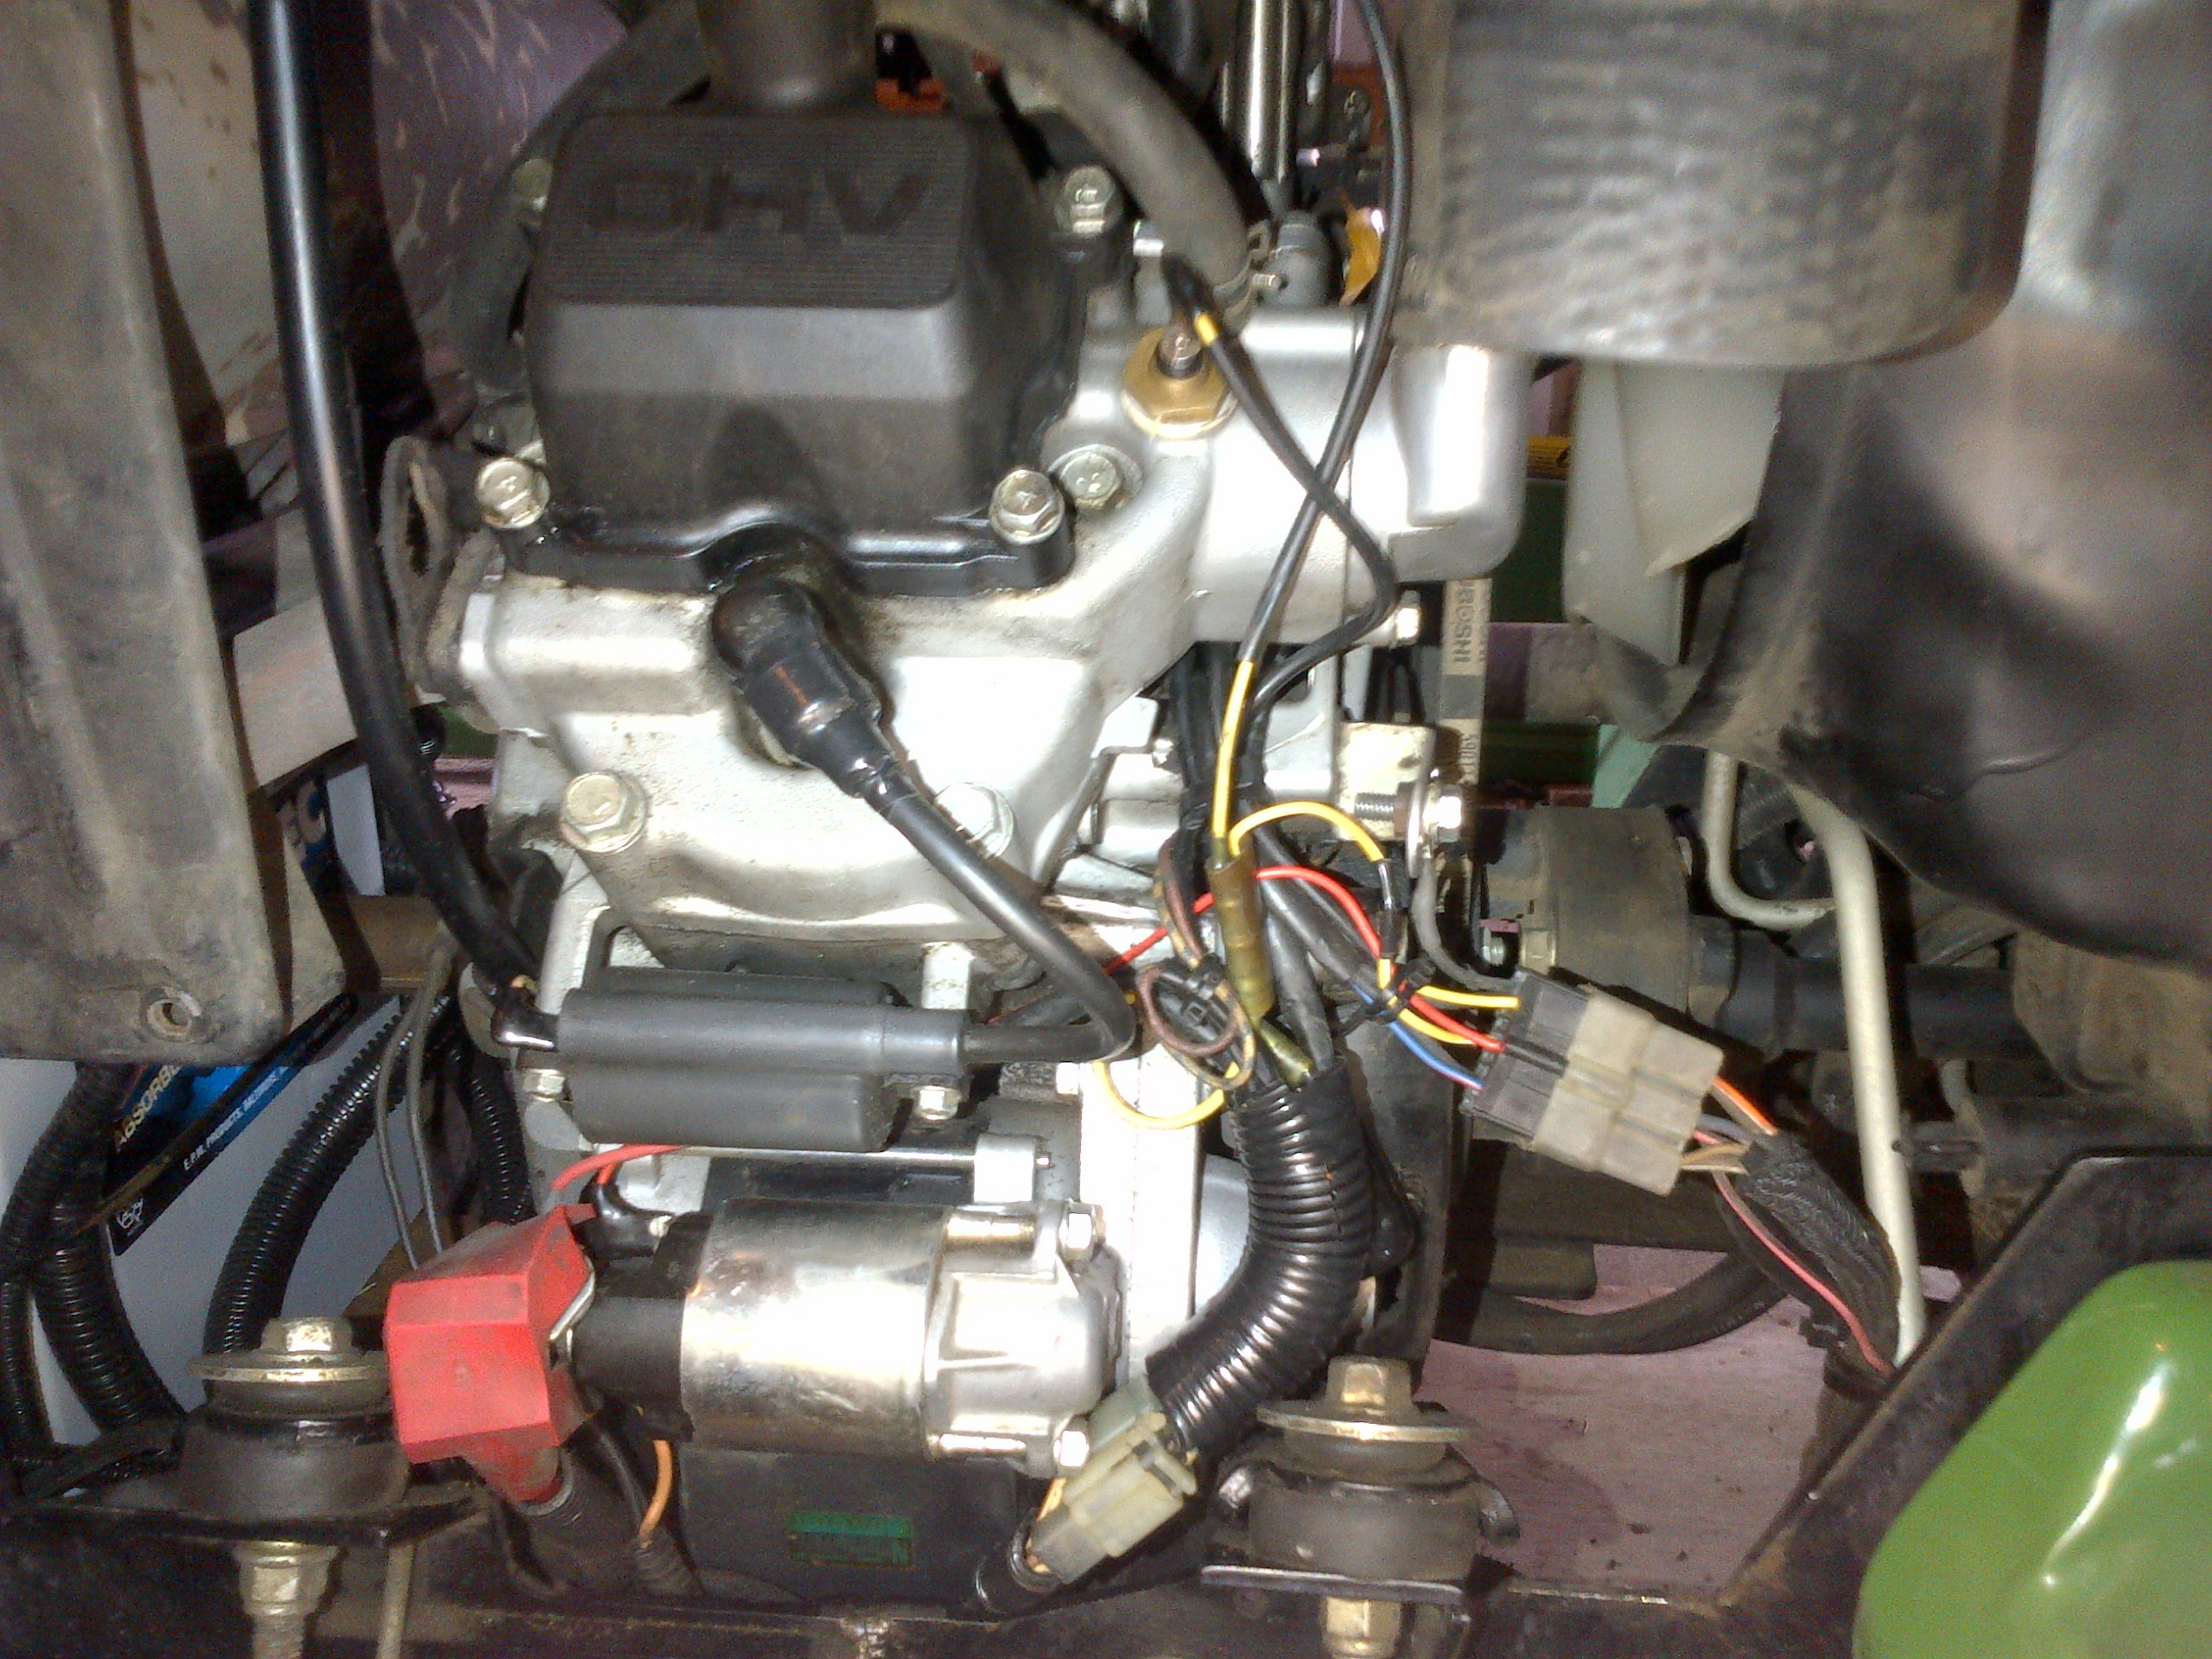 Jd 425 garden tractor page 2 mytractorforum the click image for larger version name igniter under starter and all wires wrappedg sciox Images